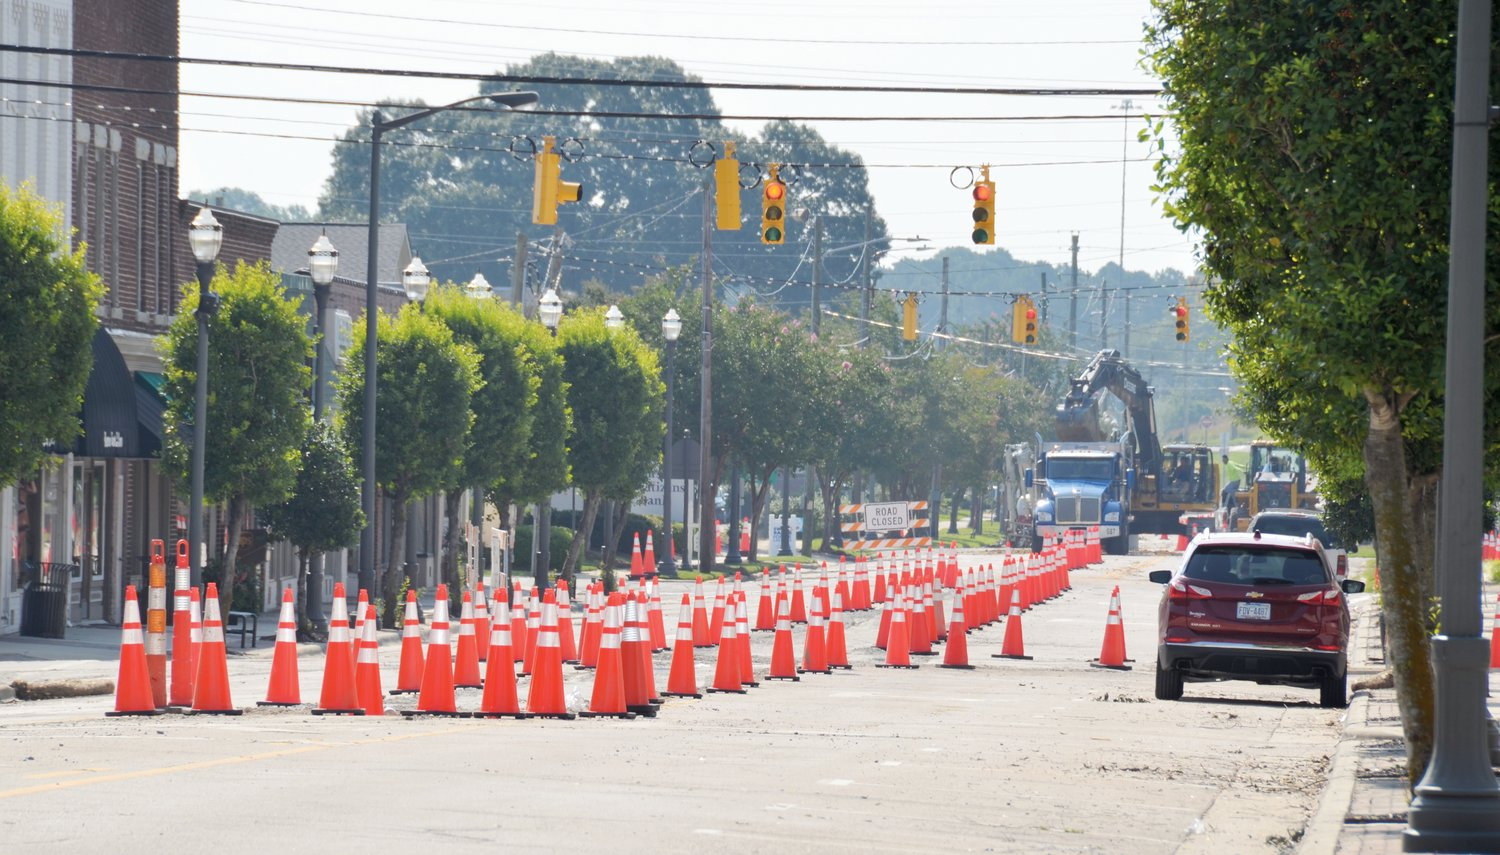 The sewer replacement project in downtown Benson will be completed soon according to Mayor Jerry Medlin. Drivers will soon be able to travel the road currently occupied by construction cones, equipment and detour signs.